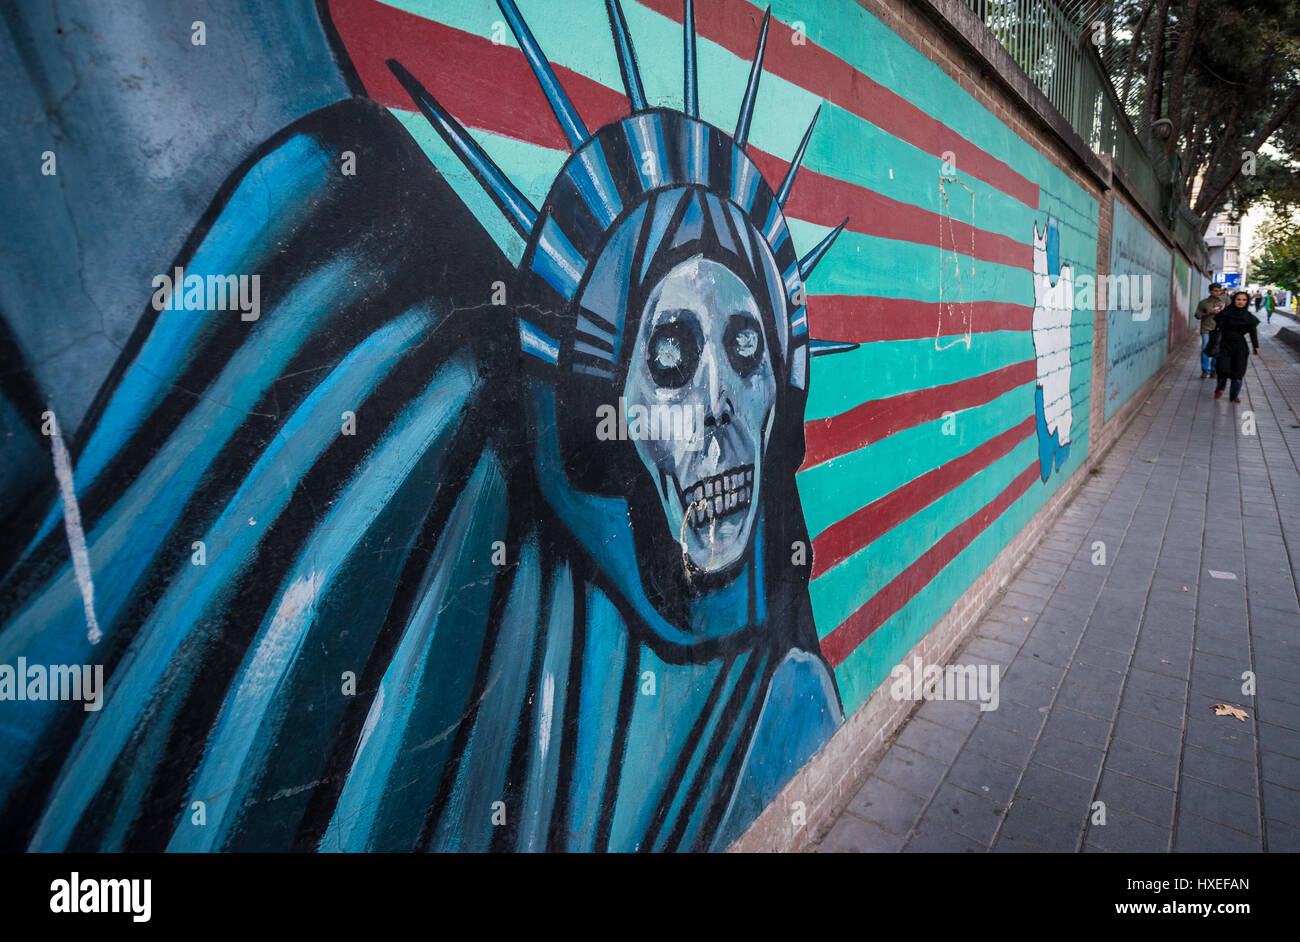 Statue Of Liberty Death Mask Anti American Graffiti On The Wall Of The Former Us